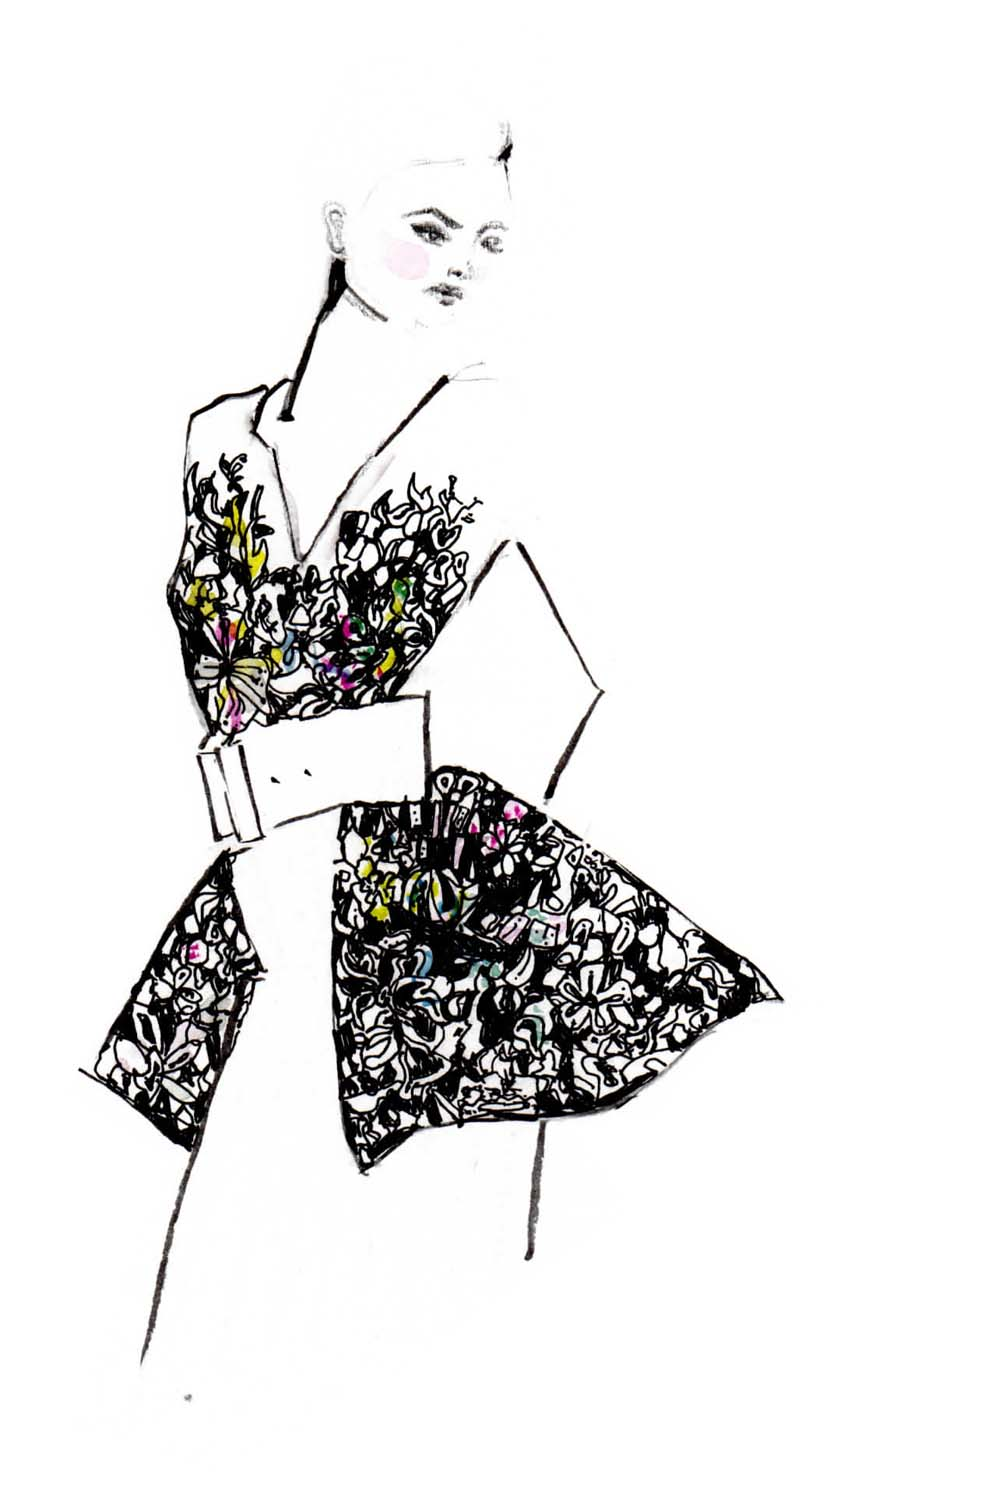 Erfahre, wie du deine eigenen Modezeichnungen erstellen kannst und auf was du achten musst + einfach Erklärung in 3 Schritten. Fashion Illustrations | Fashionsketch | Fashionsketchbook | ModeIillustration | Hermine on walk